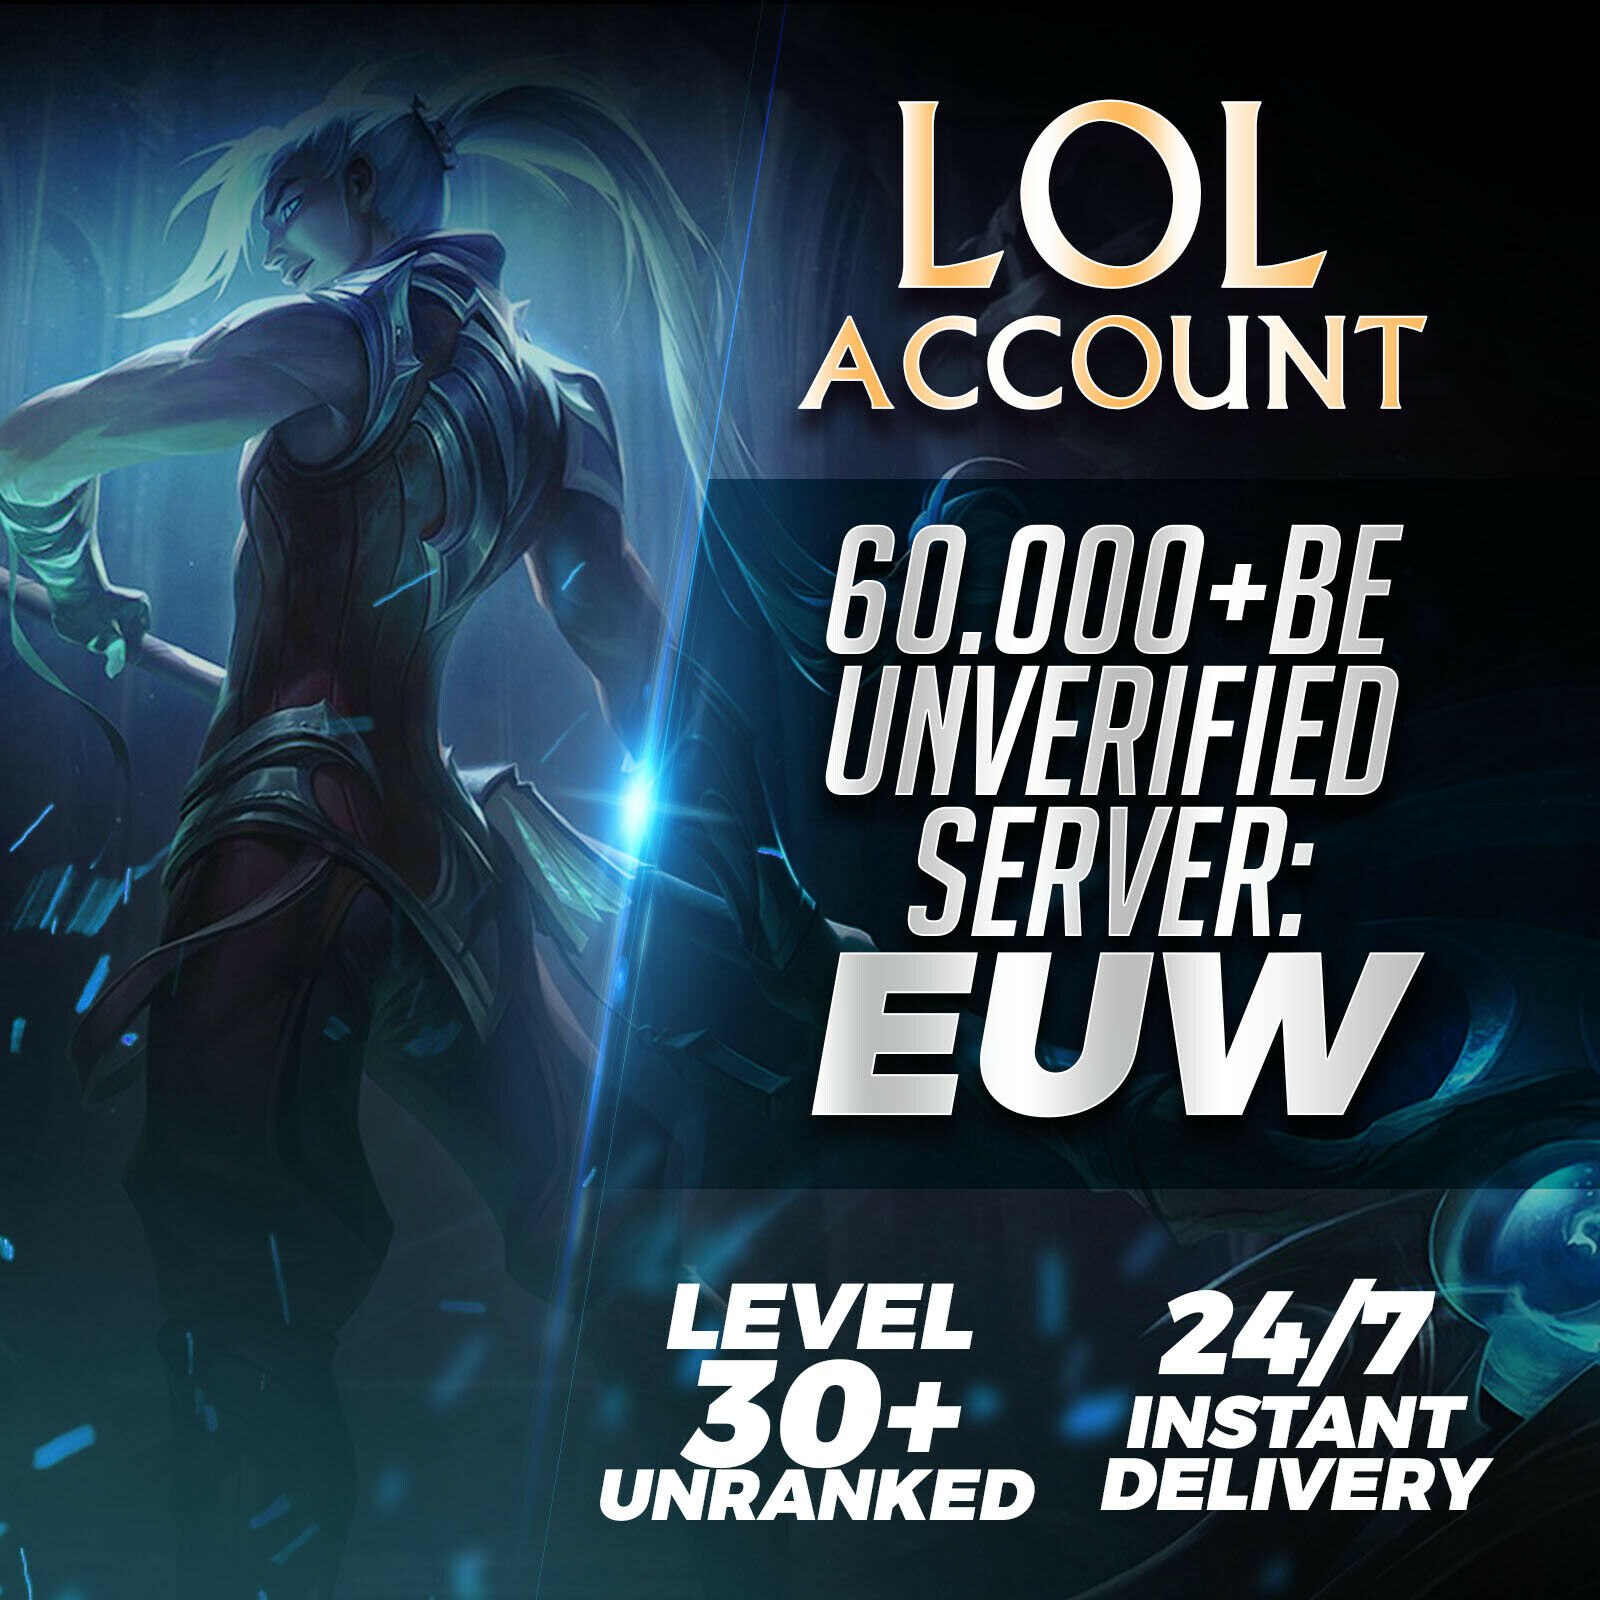 League of Legends Account EUW LOL Smurf 60.000 - 69.000 BE ...